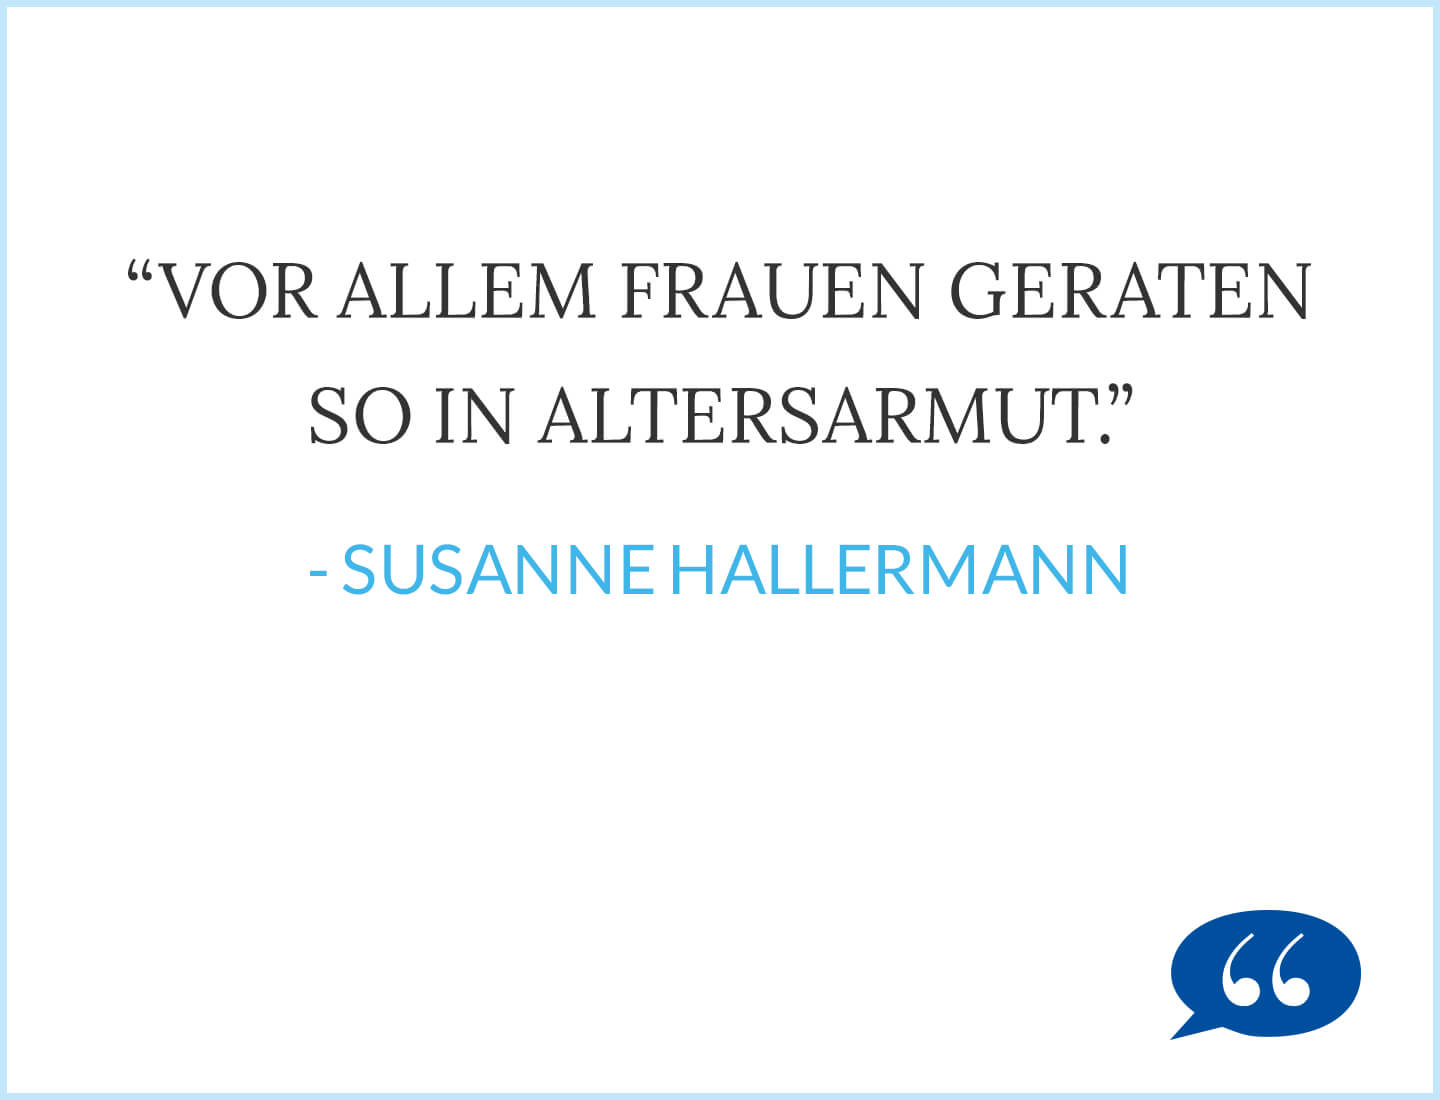 Vor allem Frauen geraten so in Altersarmut. - Susanne Hallermann